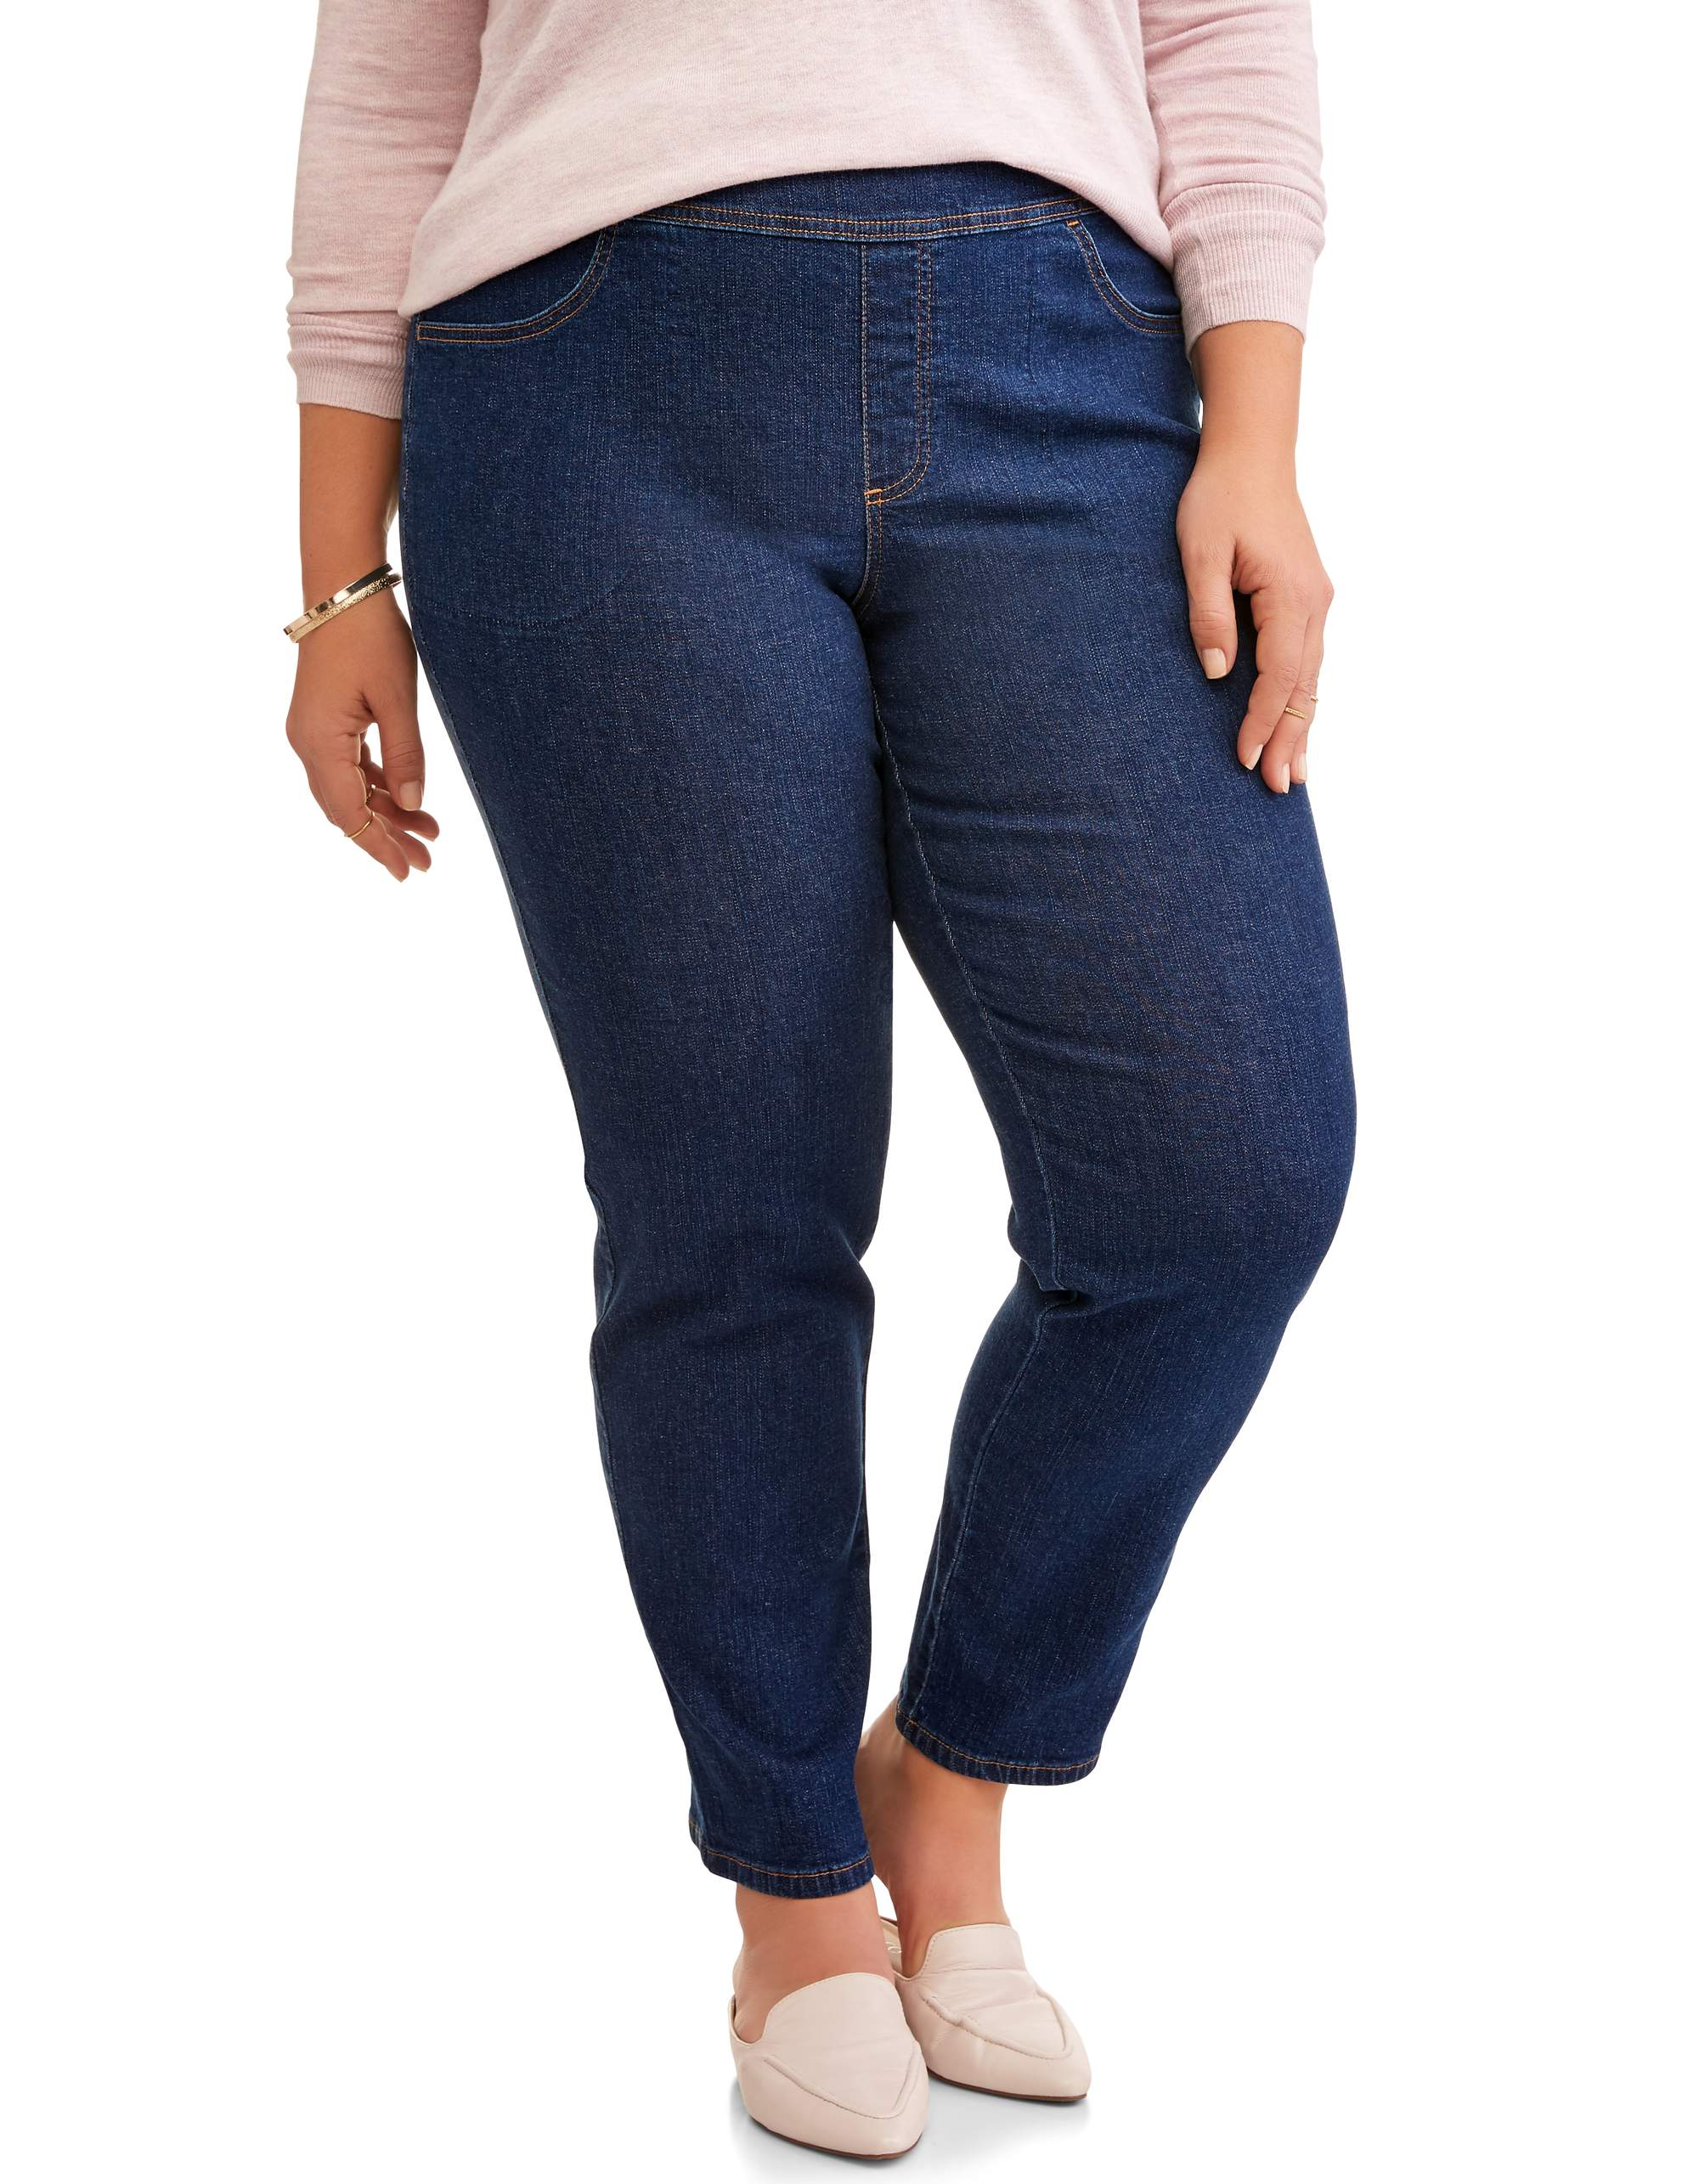 Women's Plus Size 2 Pocket Pull On Pant, Also Available in Petite Sizes